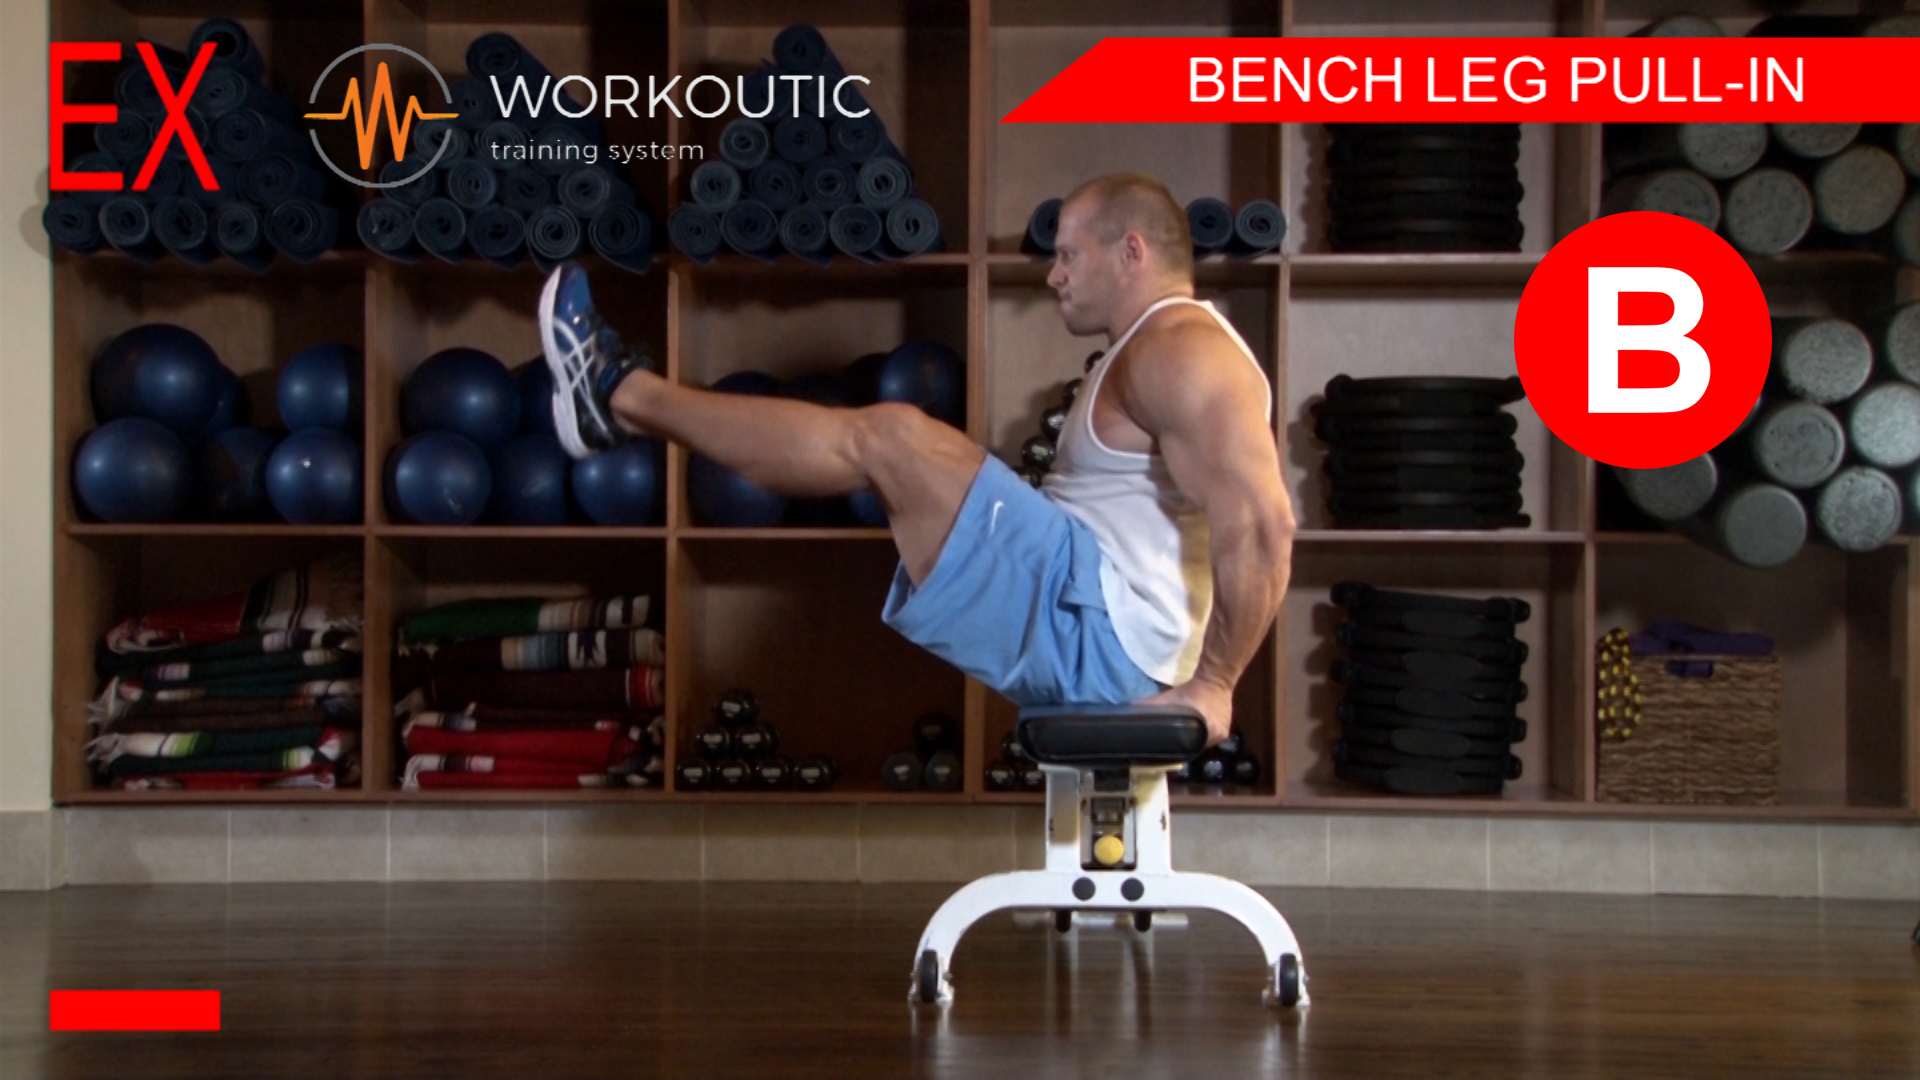 Abs Exercises - Workutic - 6 pack special - Bench Leg Pull In Exhale